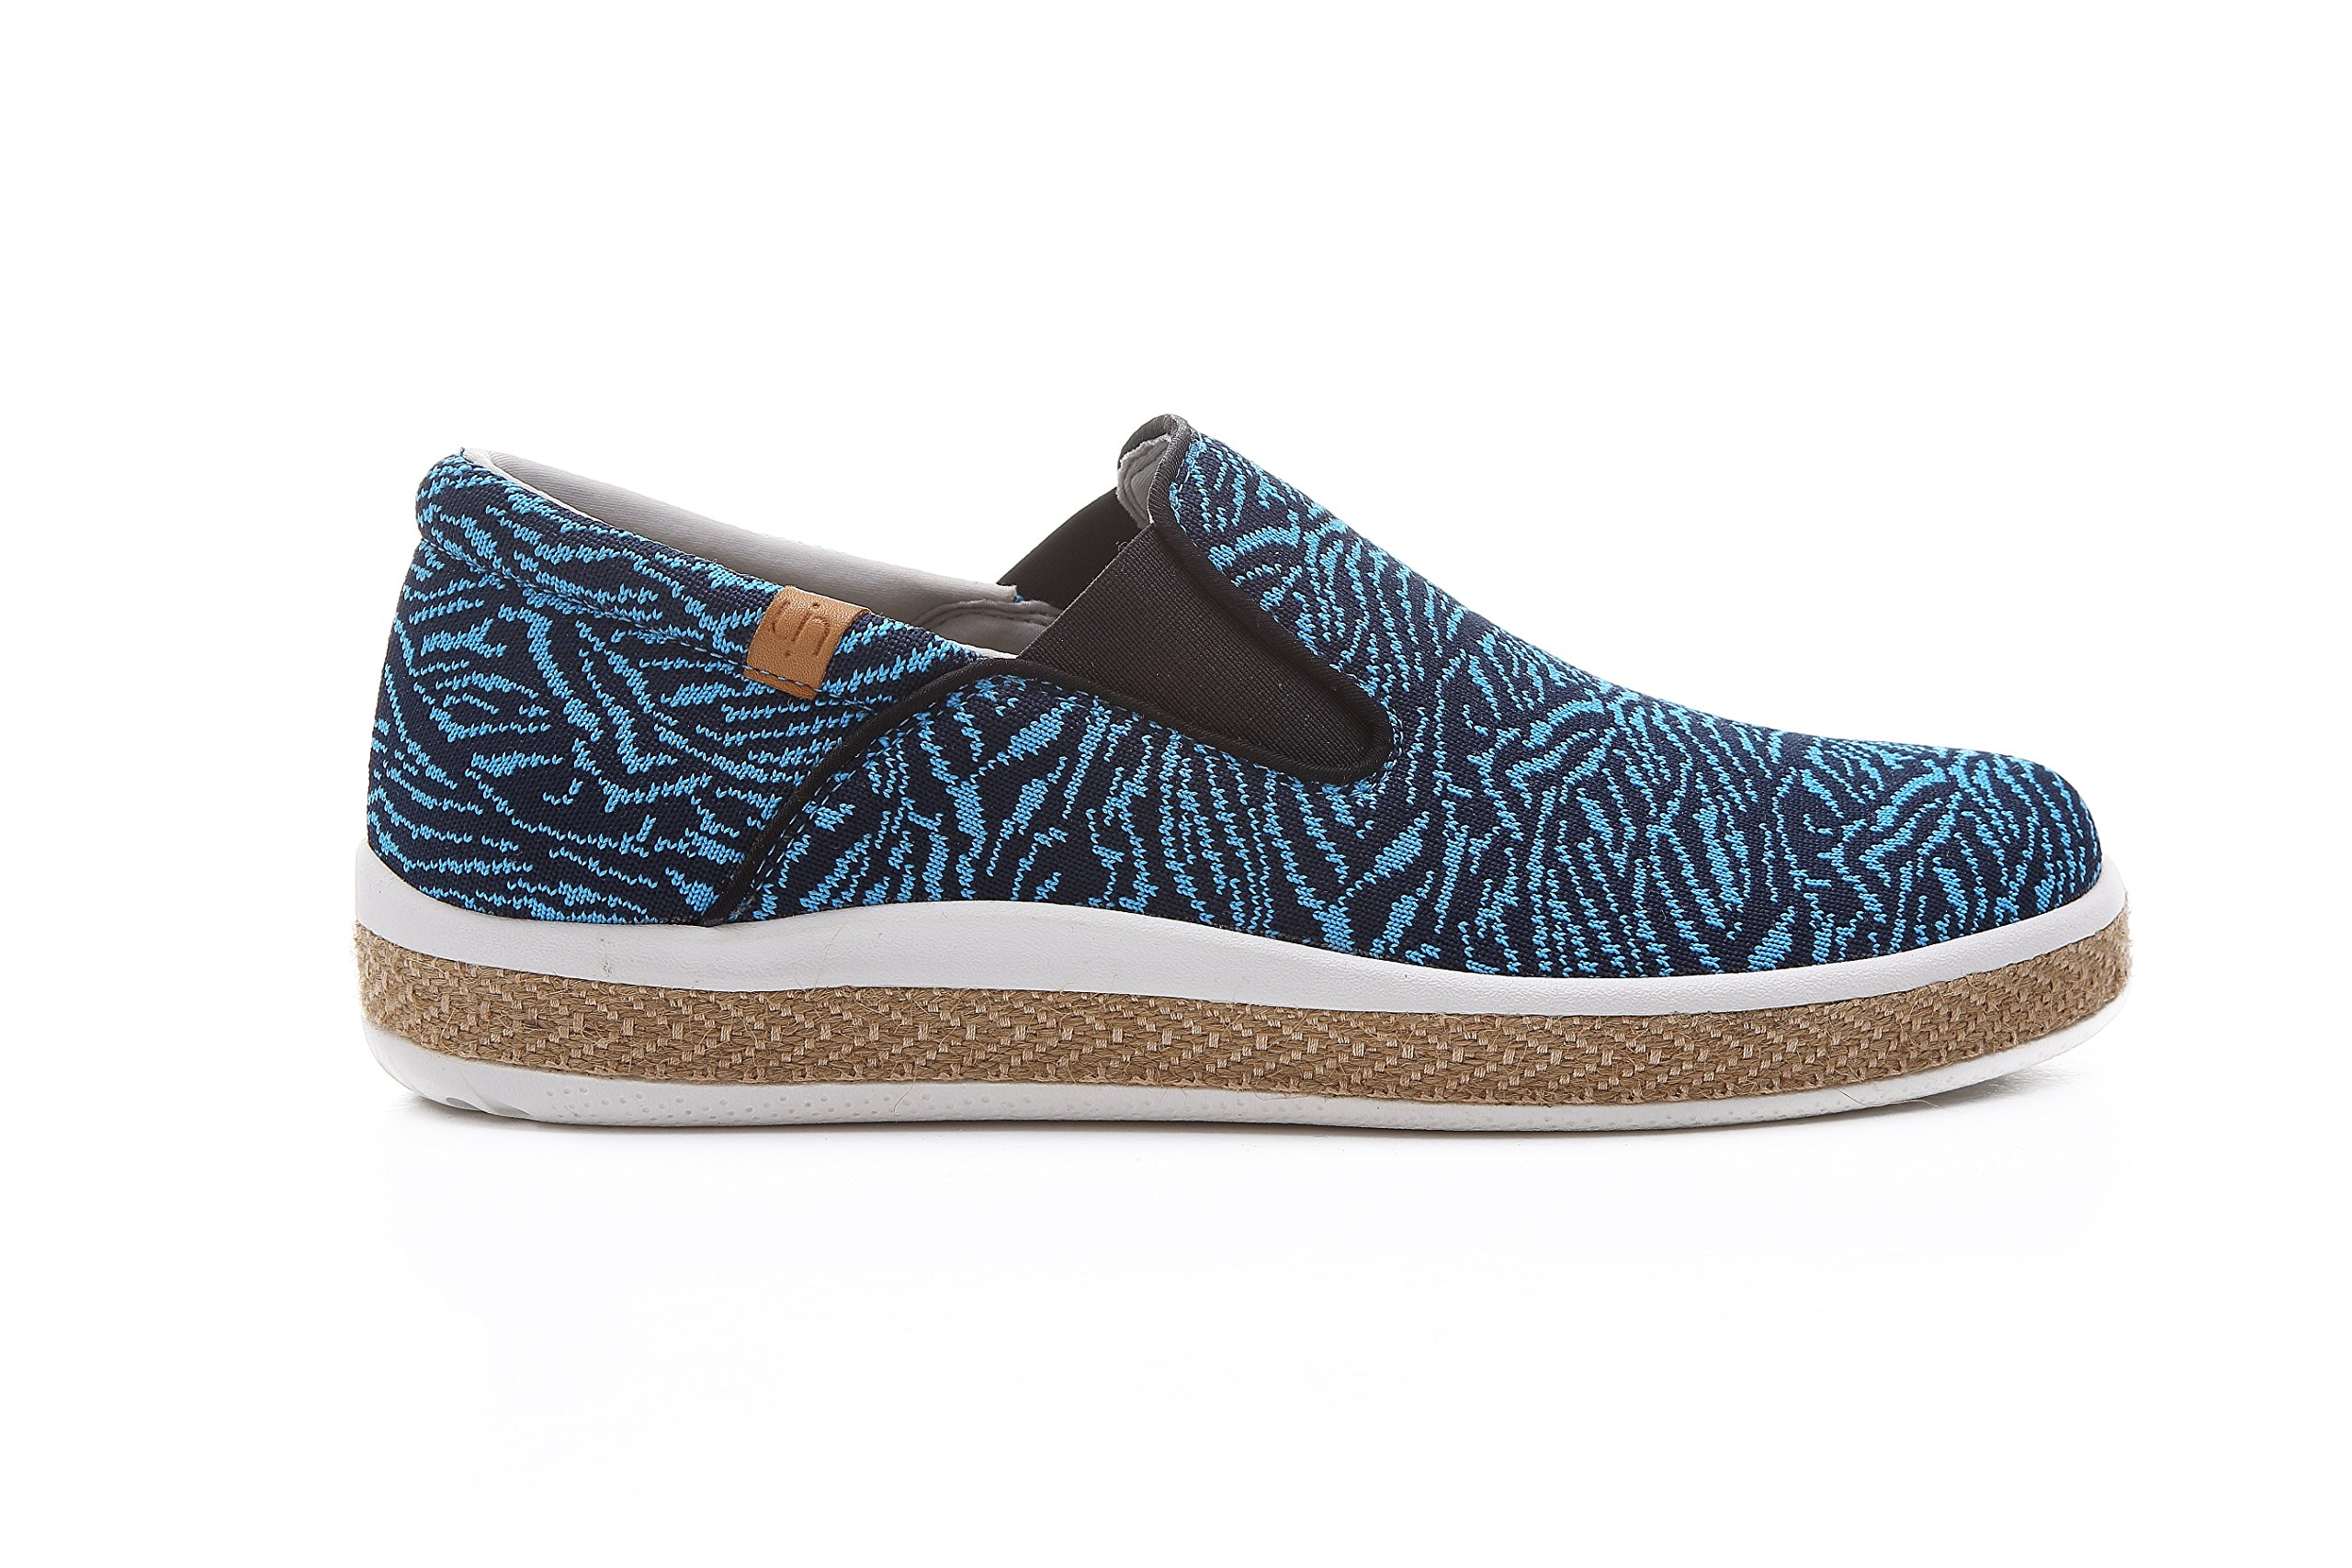 UIN Men's Tijuana Comfort Knit Travel Shoes Blue (8.5) by UIN (Image #4)